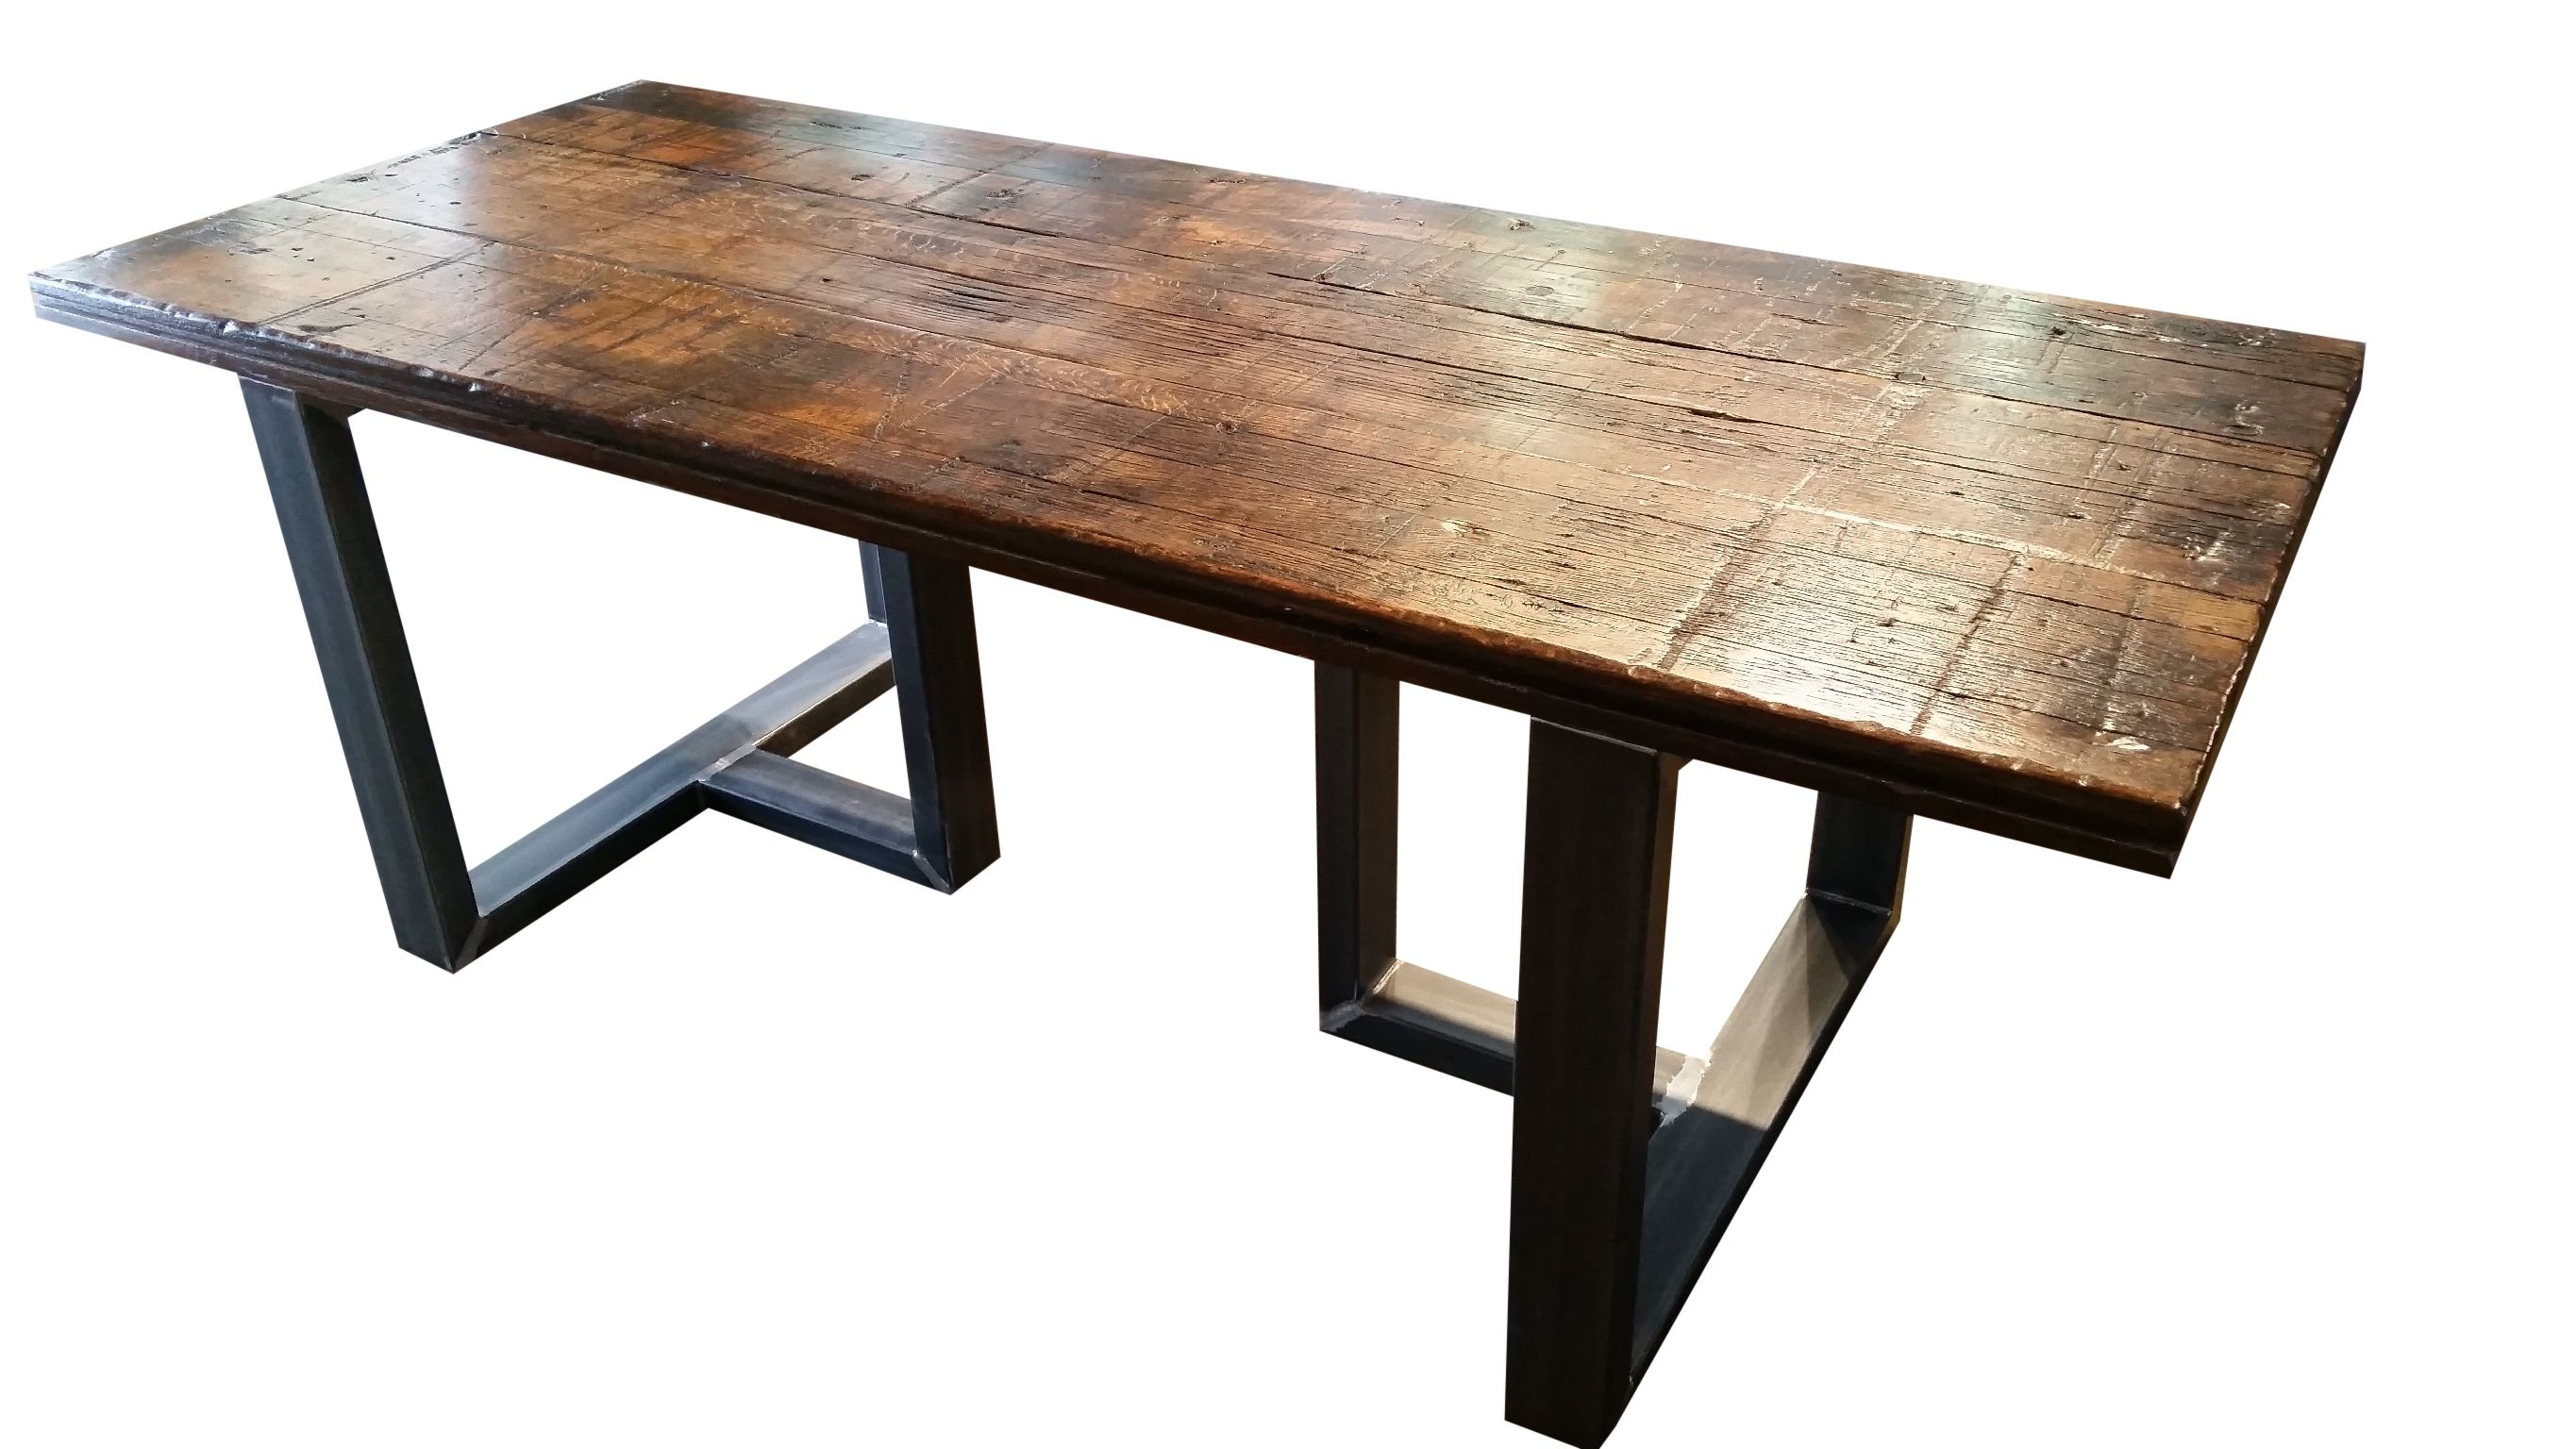 Hand Made Reclaimed Wood Dining Table By Urban Ironcraft